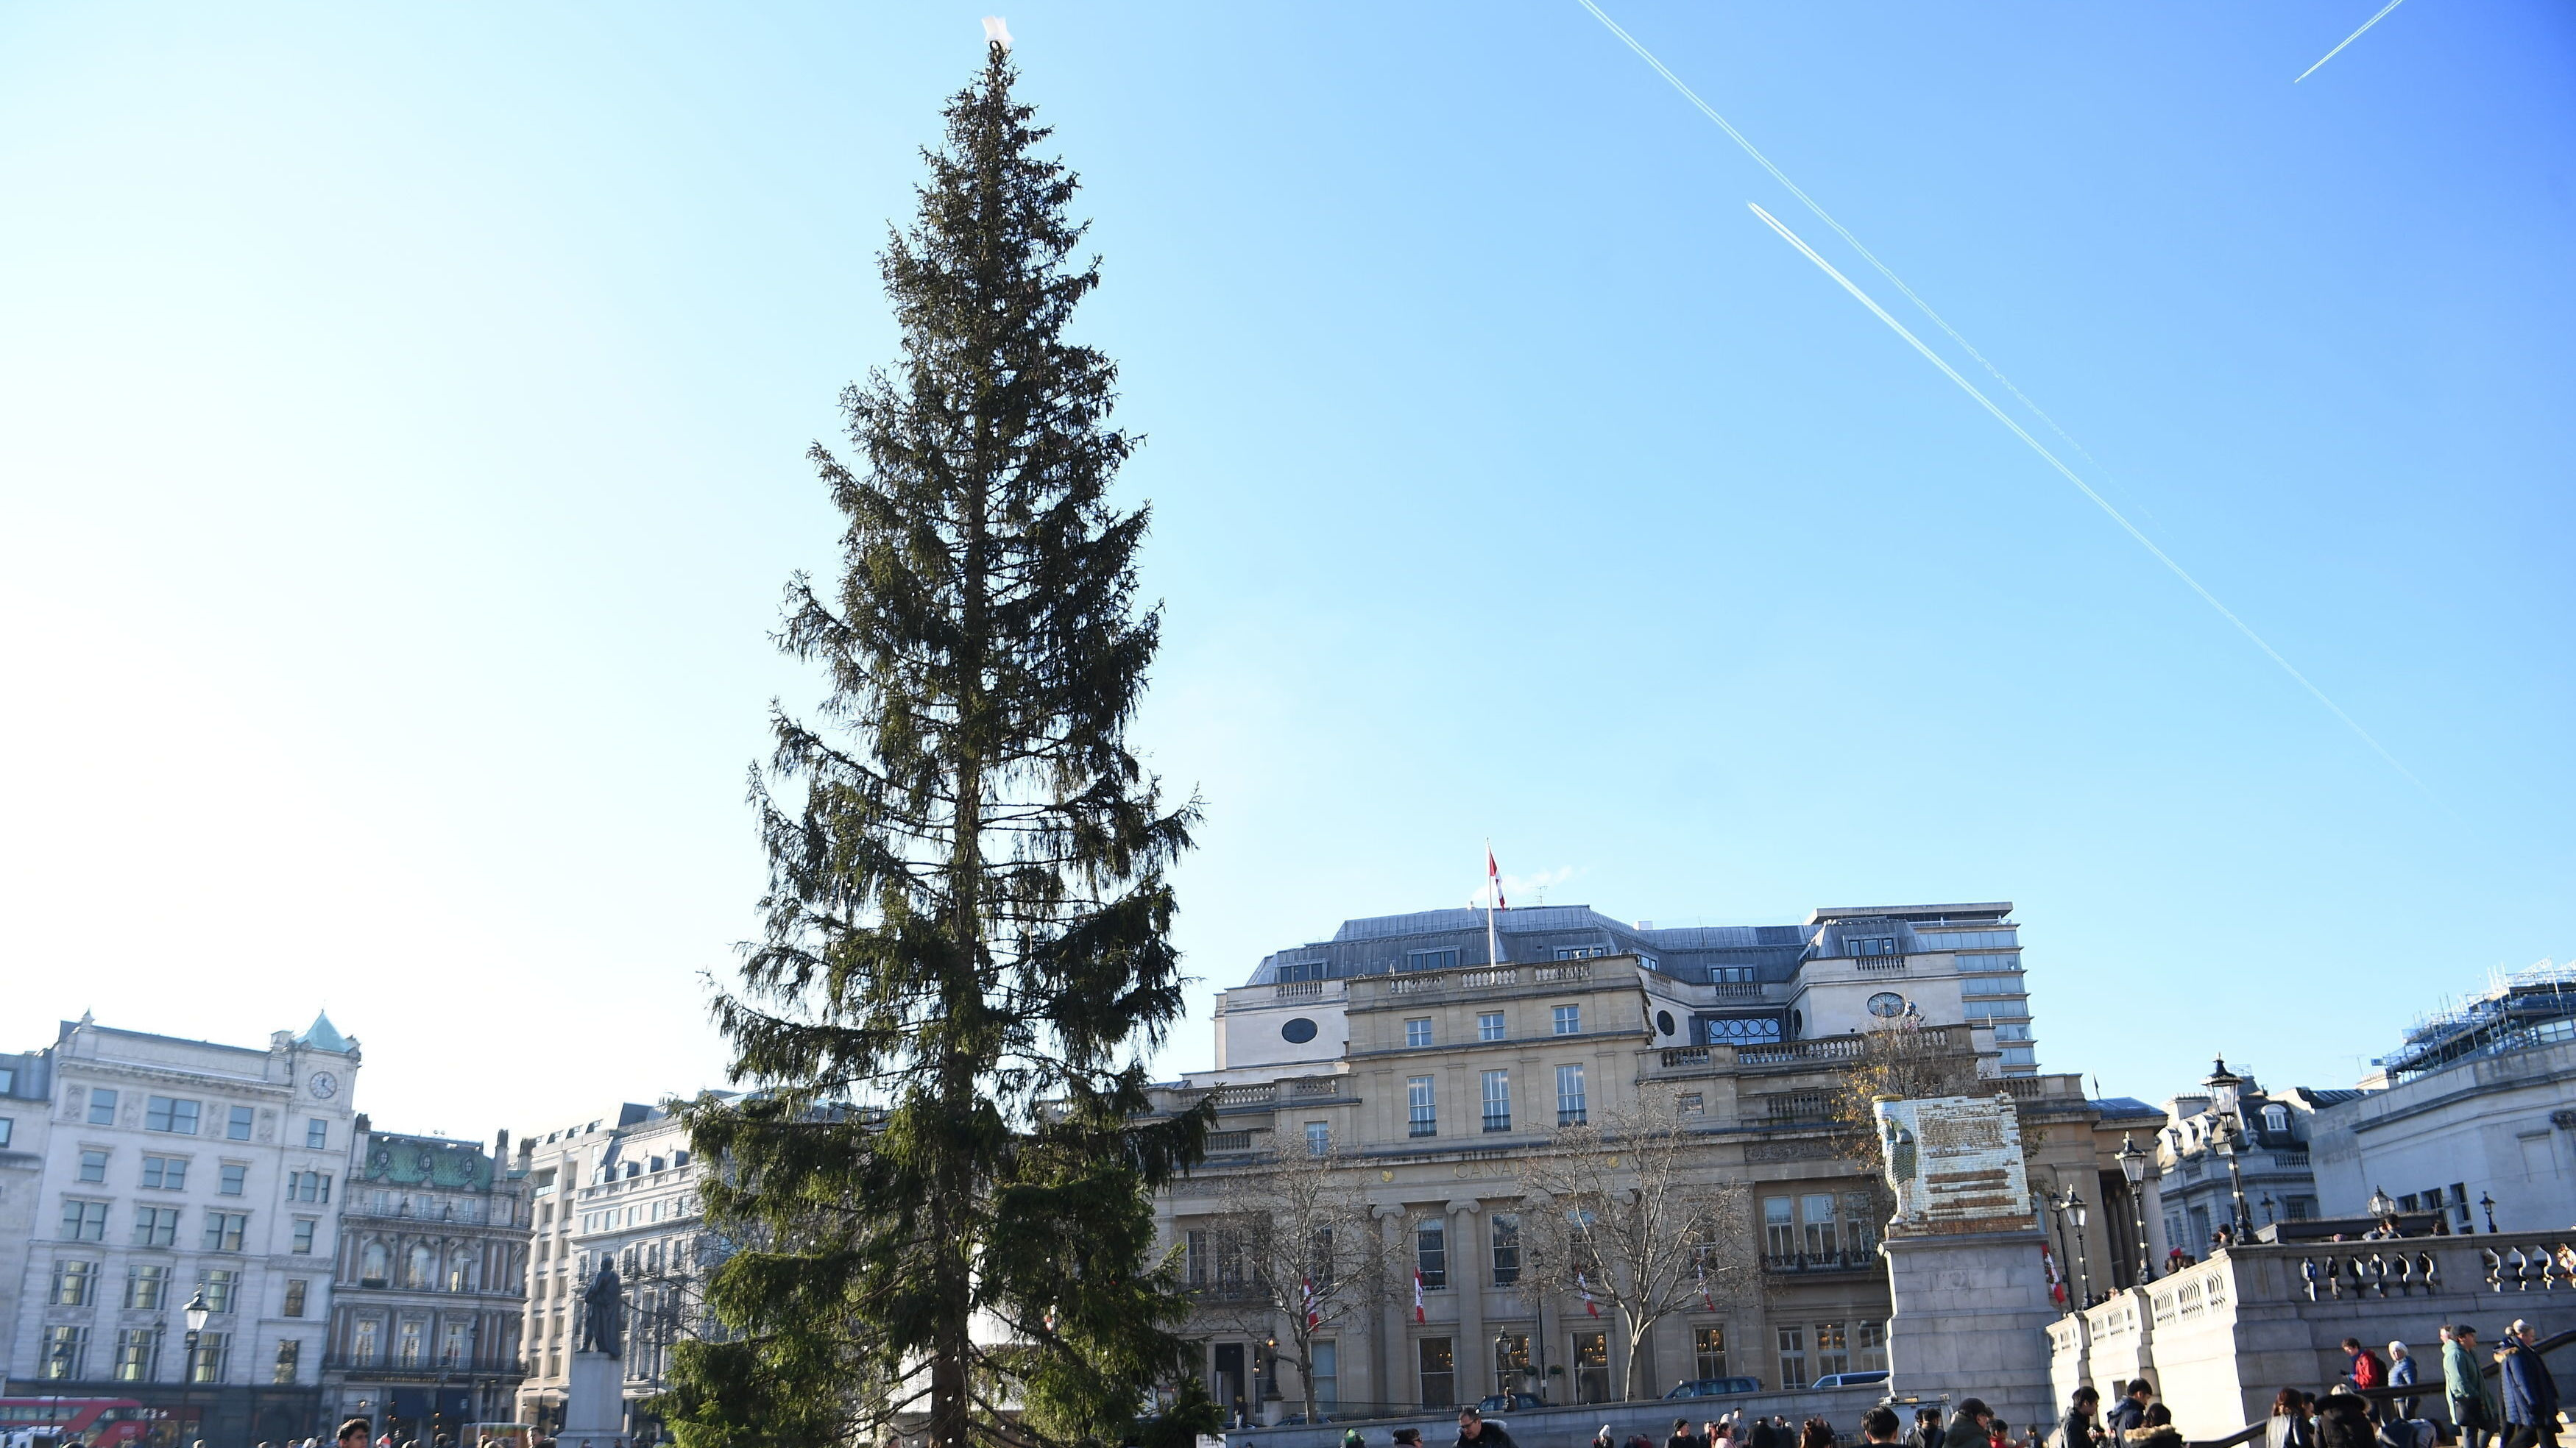 'Britain's Most Famous Christmas Tree' Criticized For Looking Sparse, Droopy And Sad   NPR